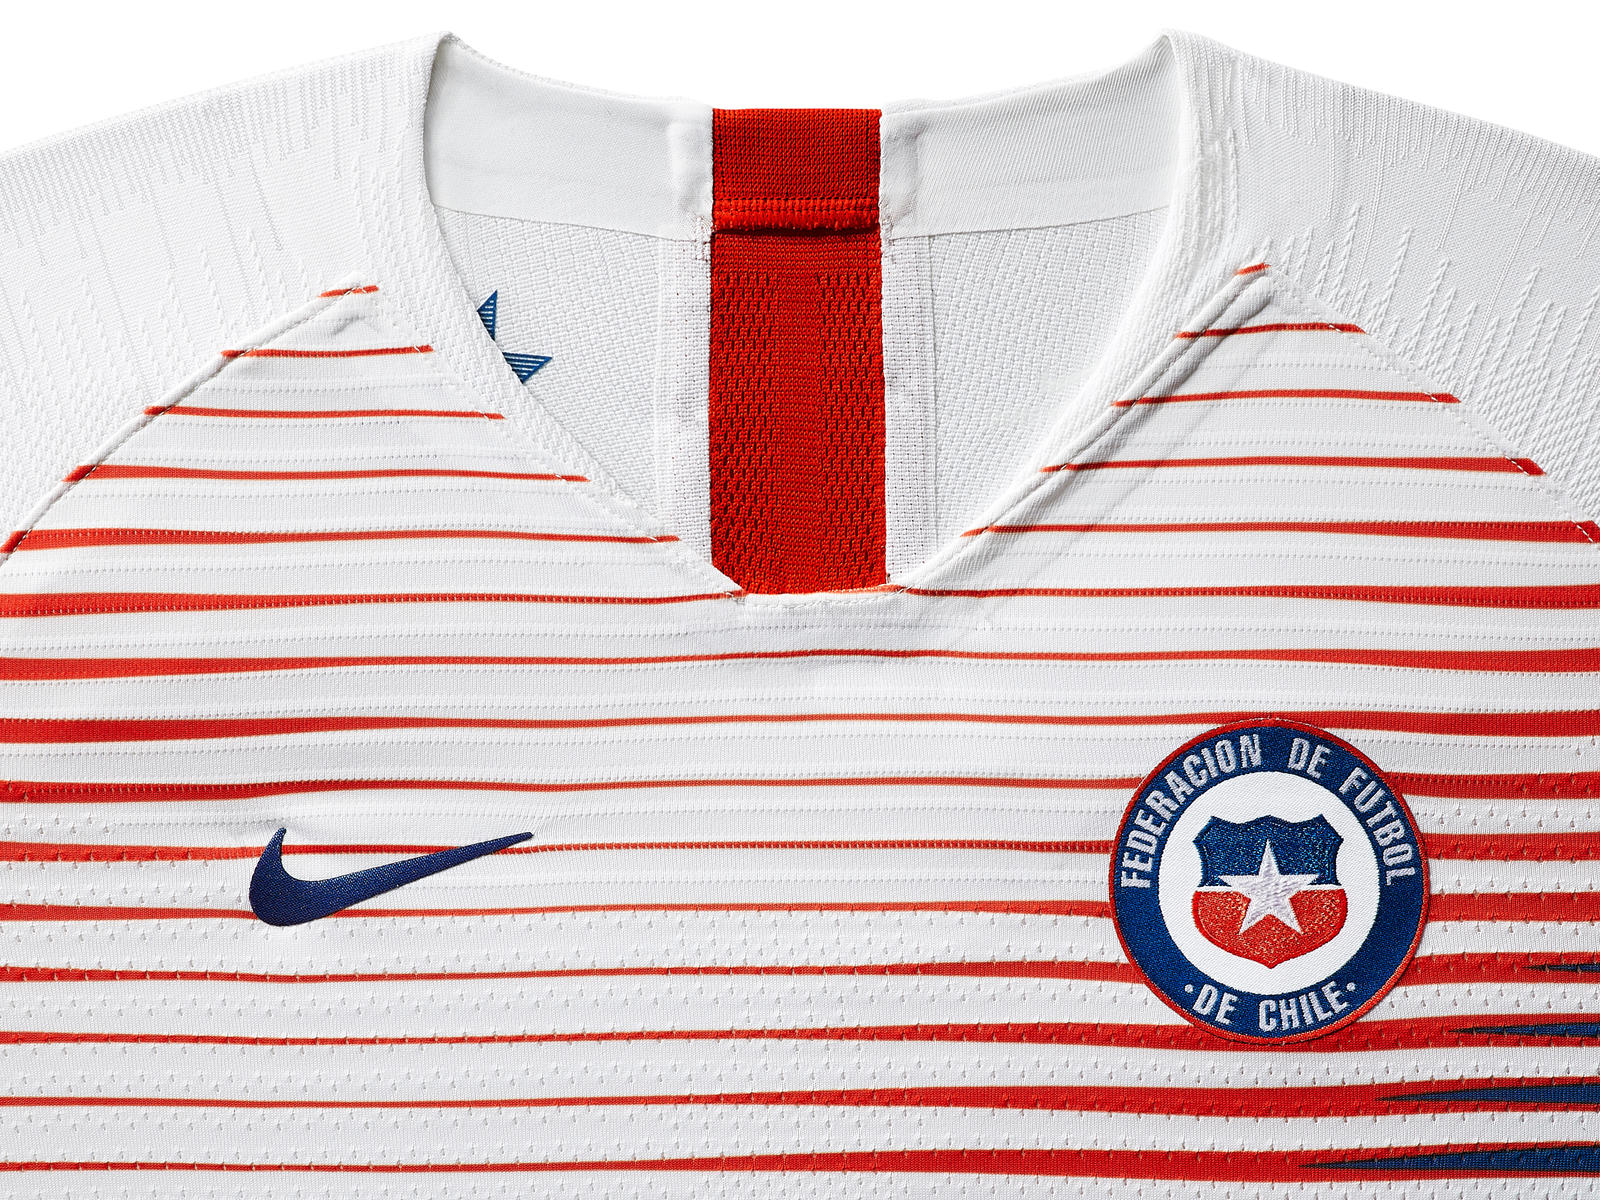 chile-national-team-kit-2019-laydown-1_85916.jpg